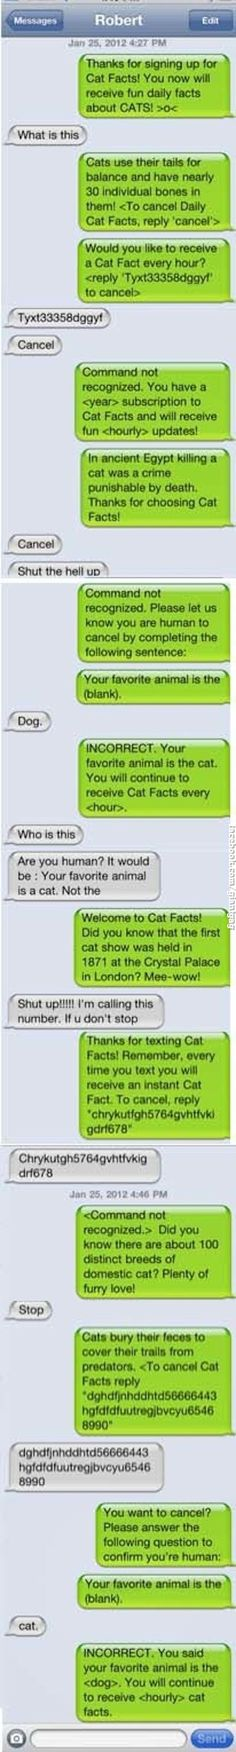 Hourly Cat Facts Subscription | Click the link to view full image and description : )